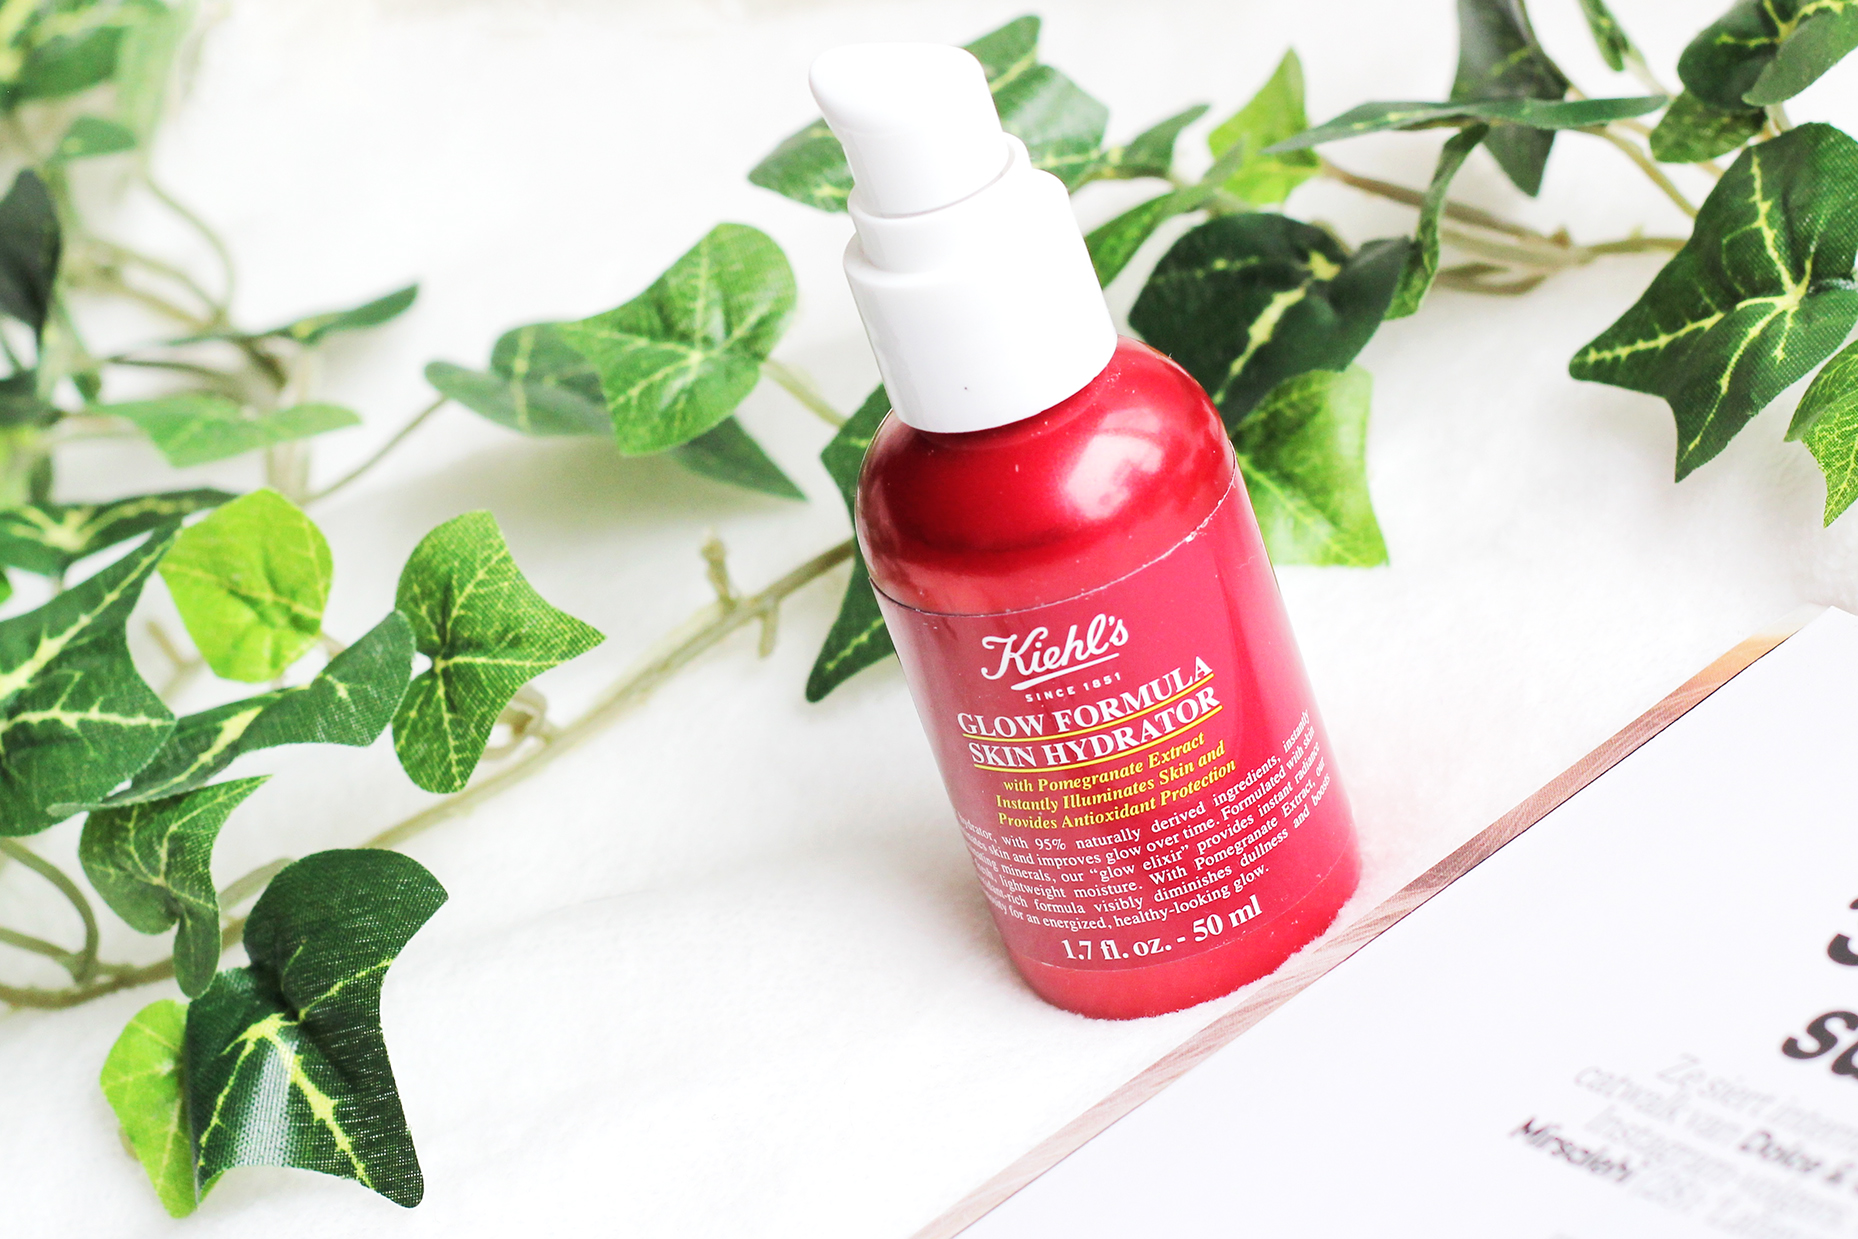 kiehl's skincare review a beauty day